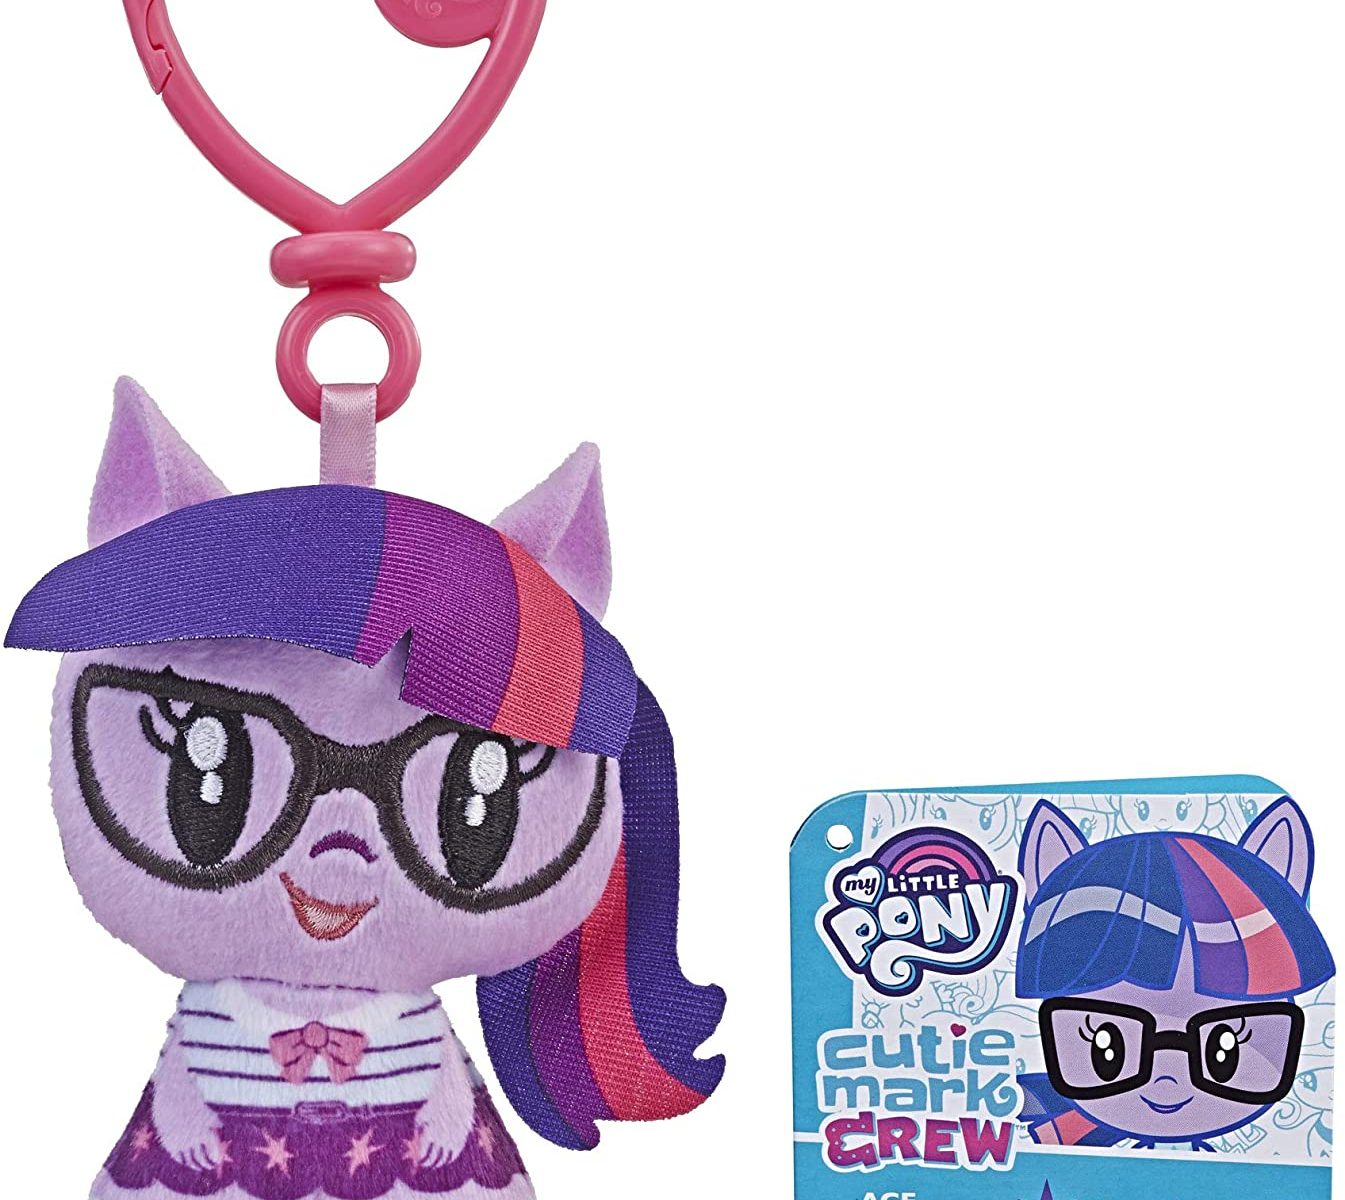 EG Cutie Mark Crew Twilight Sparkle Plush Toy Clip 1